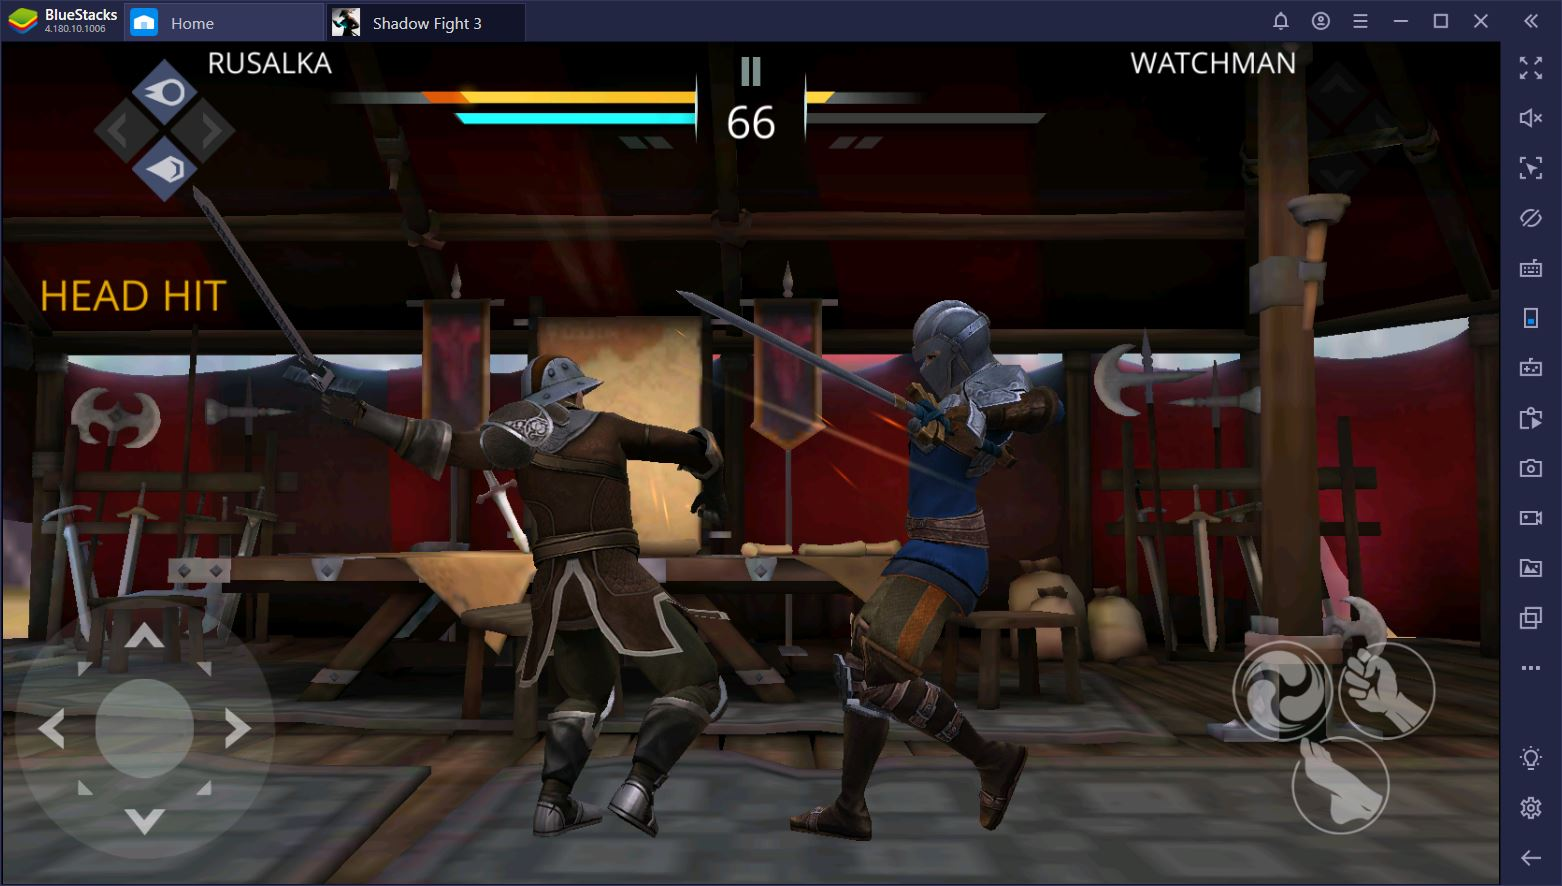 How to Play Shadow Fight 3 on PC with BlueStacks